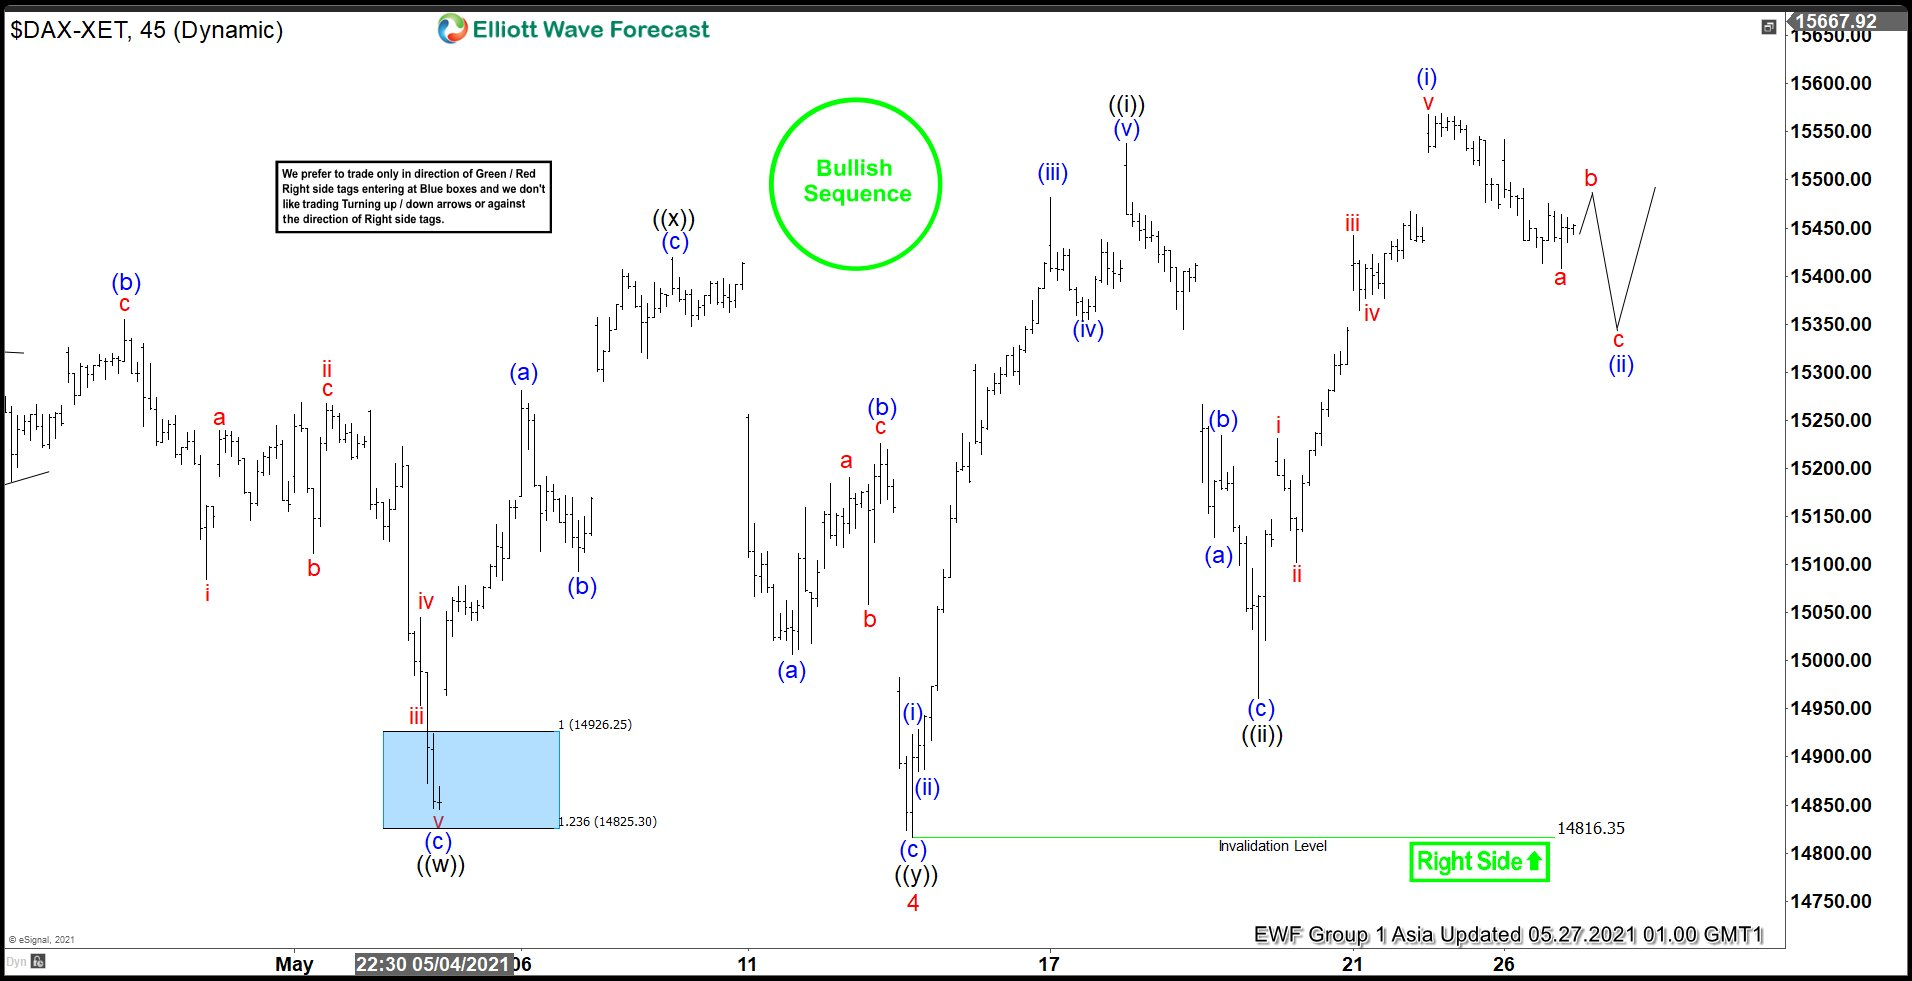 Elliott Wave View: DAX Bullish Sequence Remains Incomplete